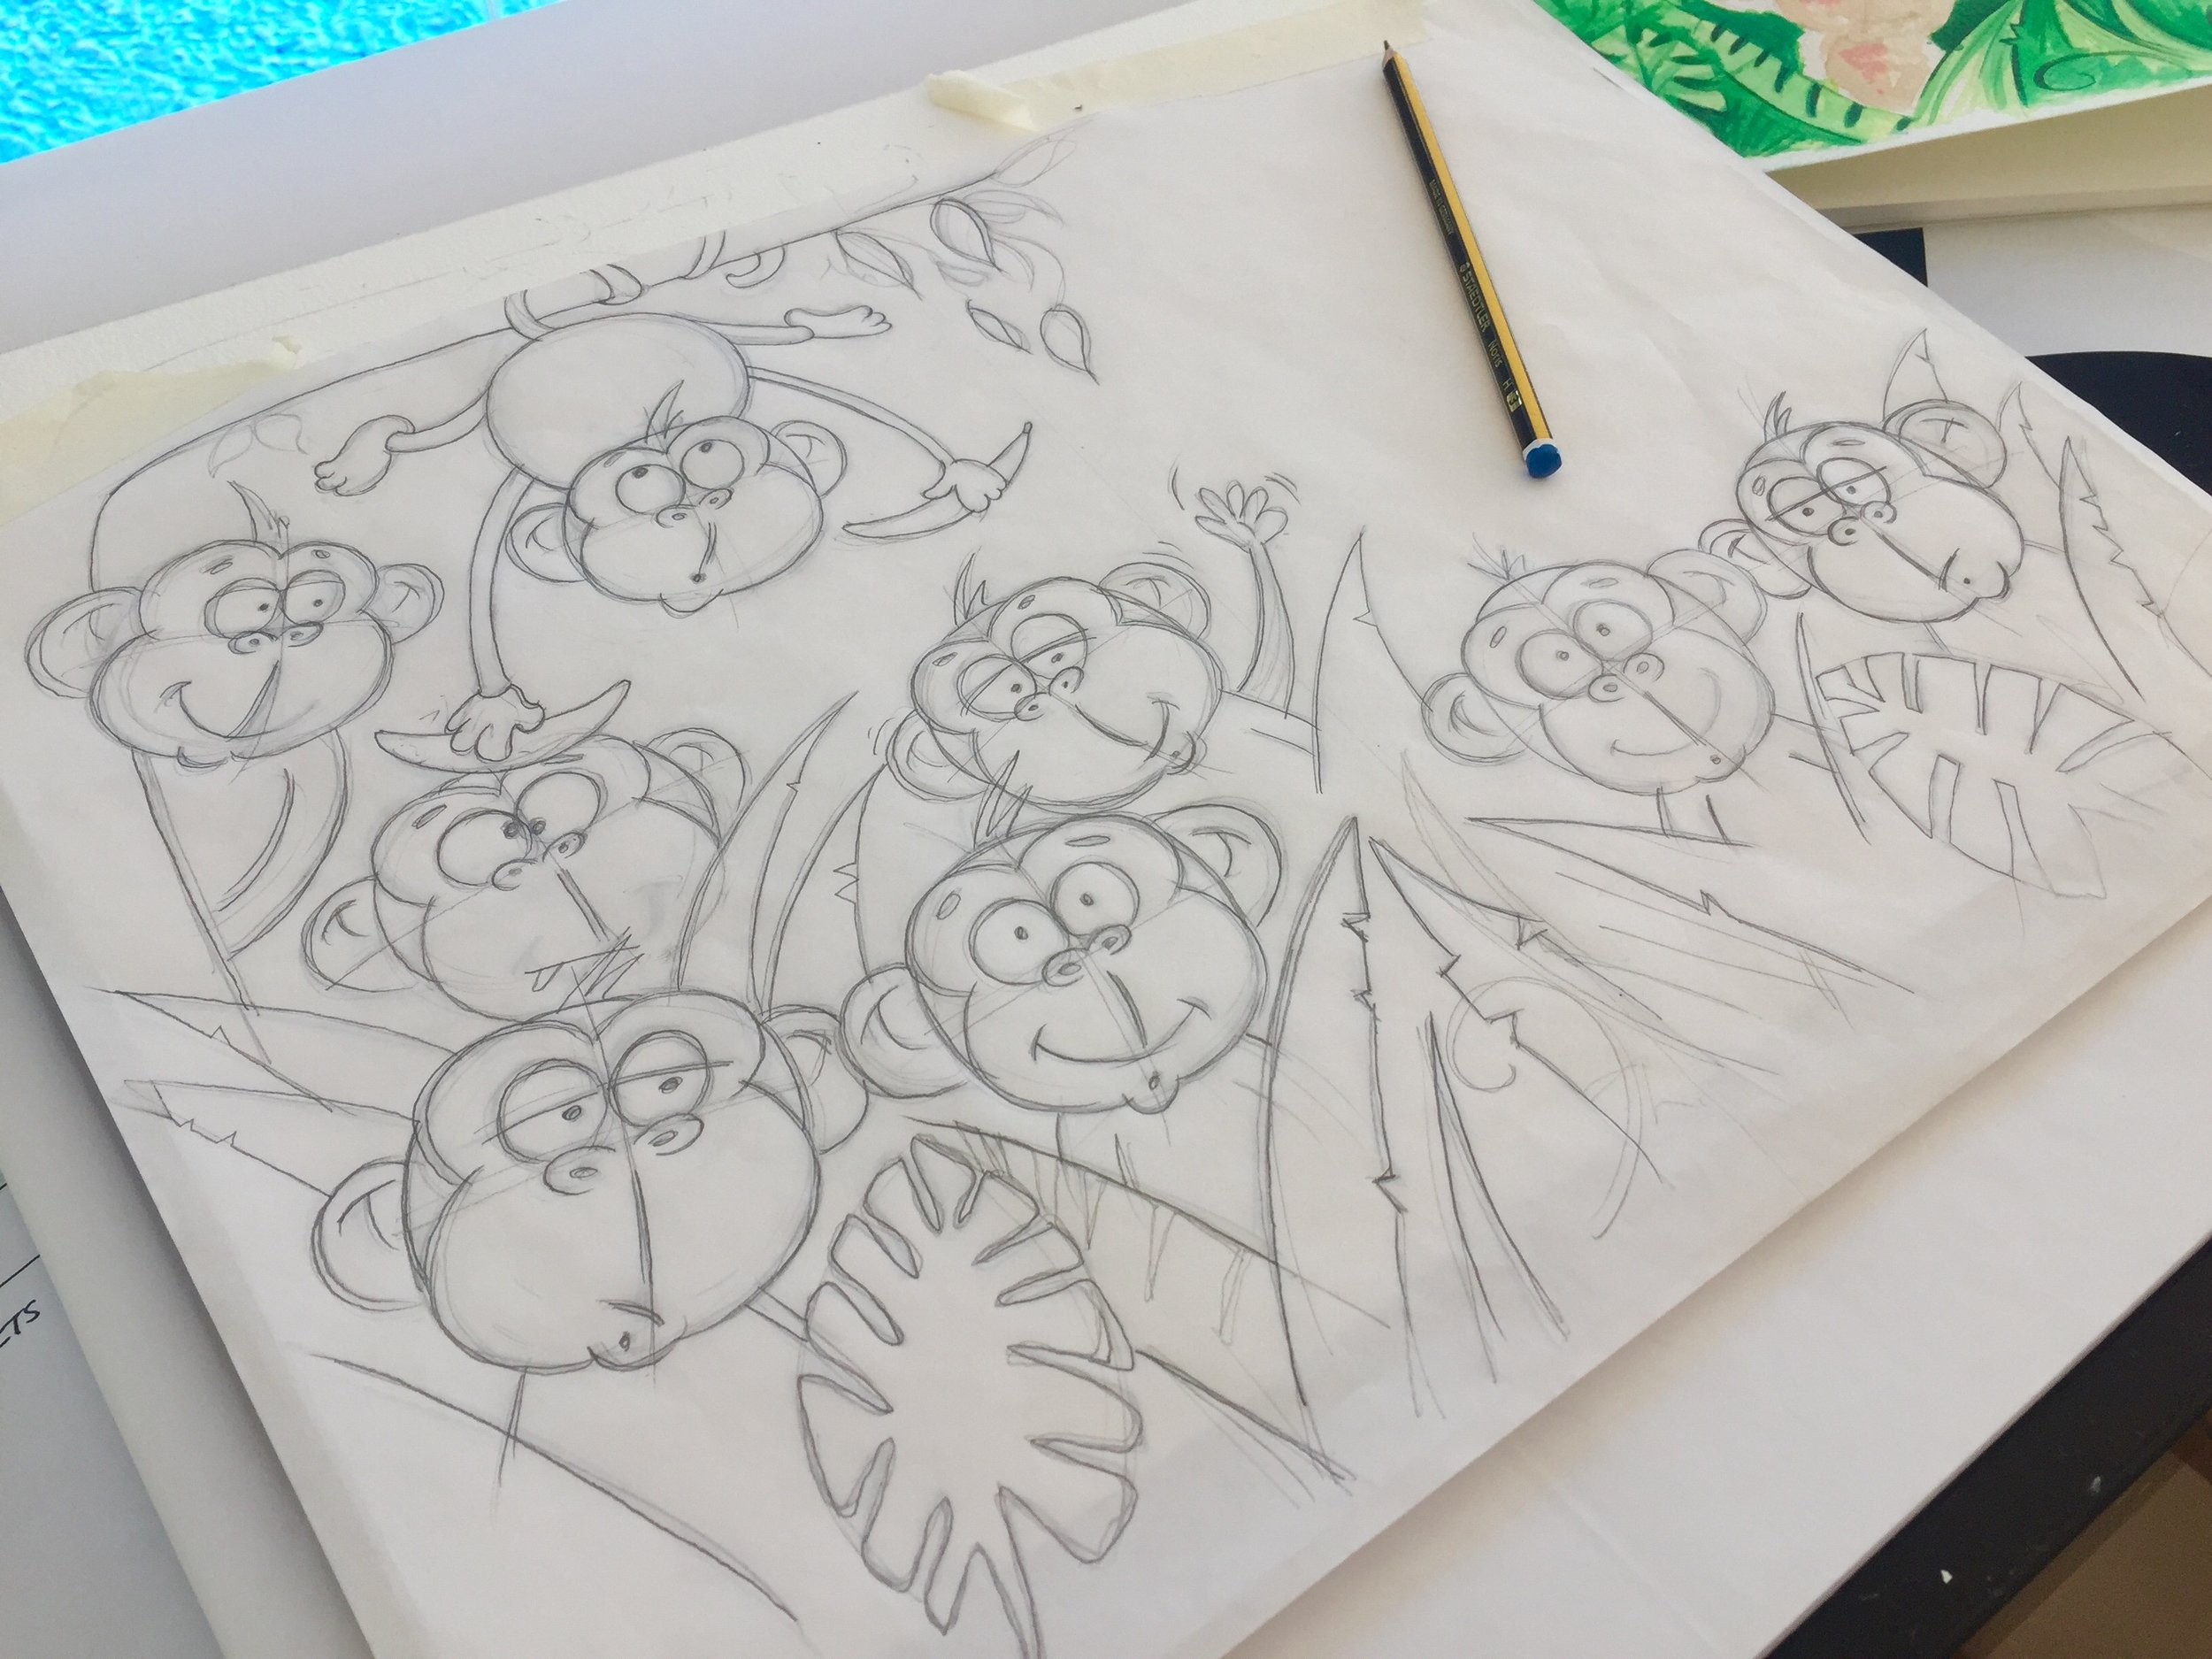 Monkeys in the jungle   My most favourite thing to draw!